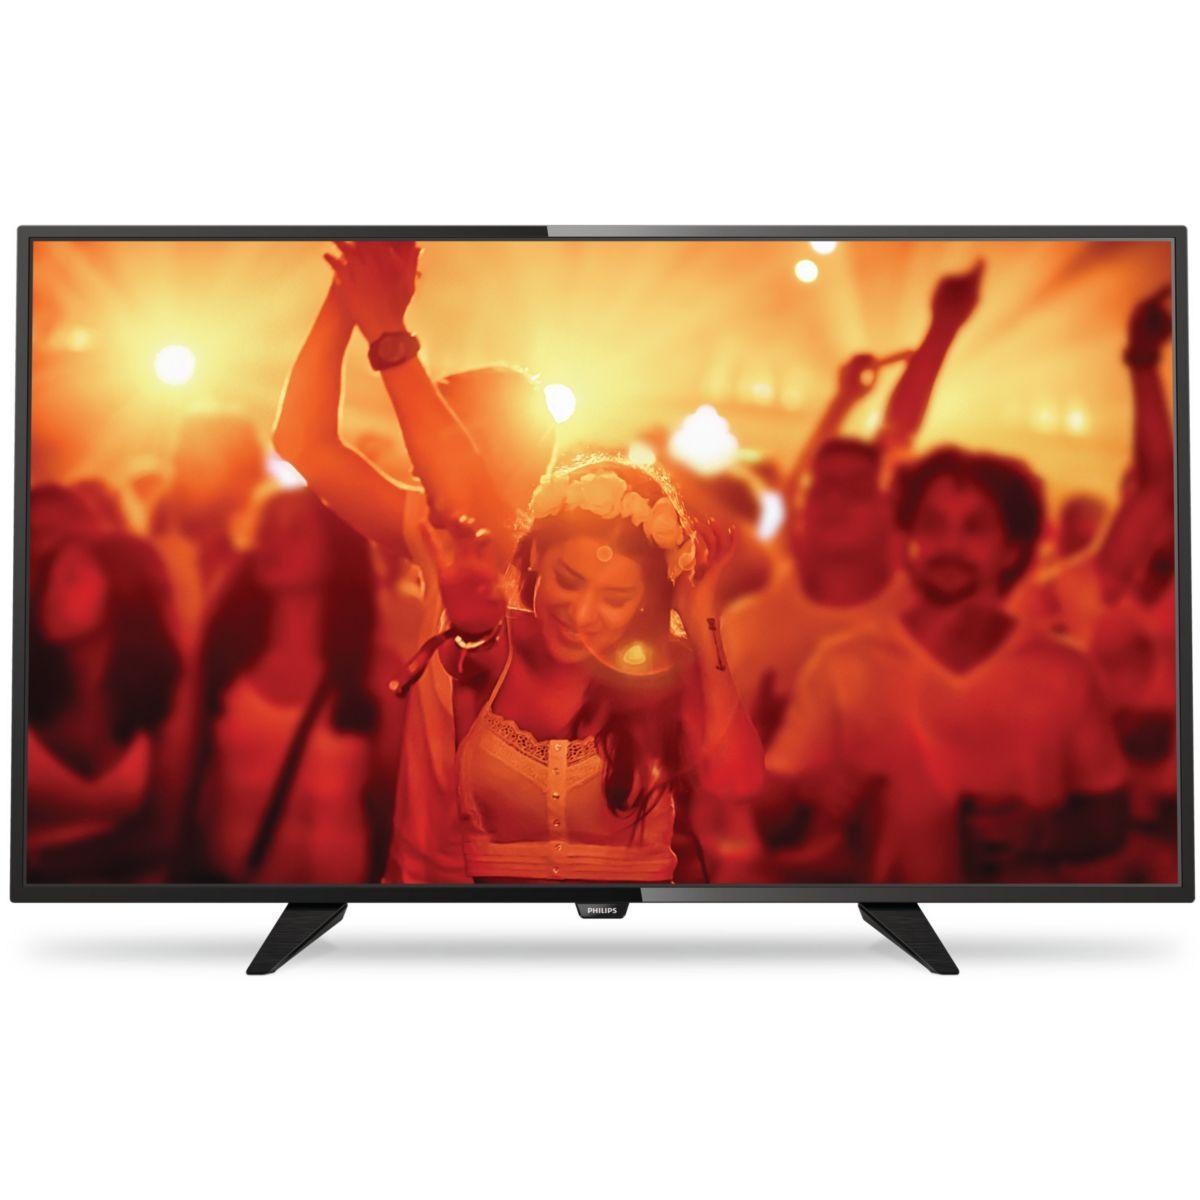 Tv philips 40pfh4101 200hz pmr (photo)